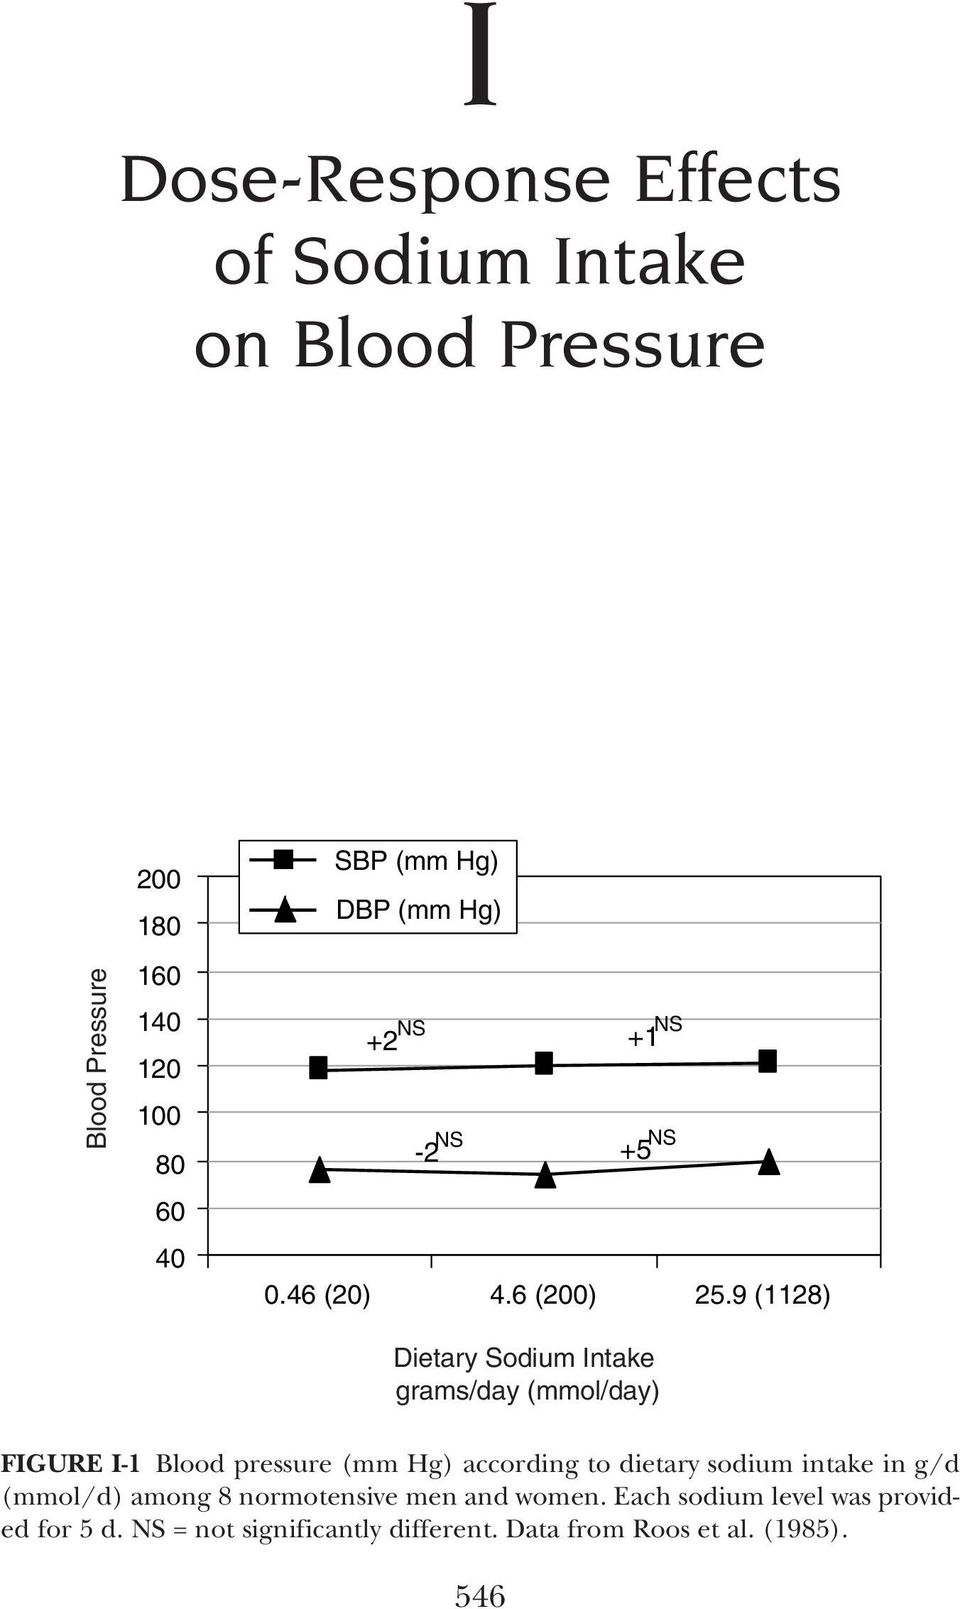 9 (1128) FIGURE I-1 Blood pressure (mm Hg) according to dietary sodium intake in